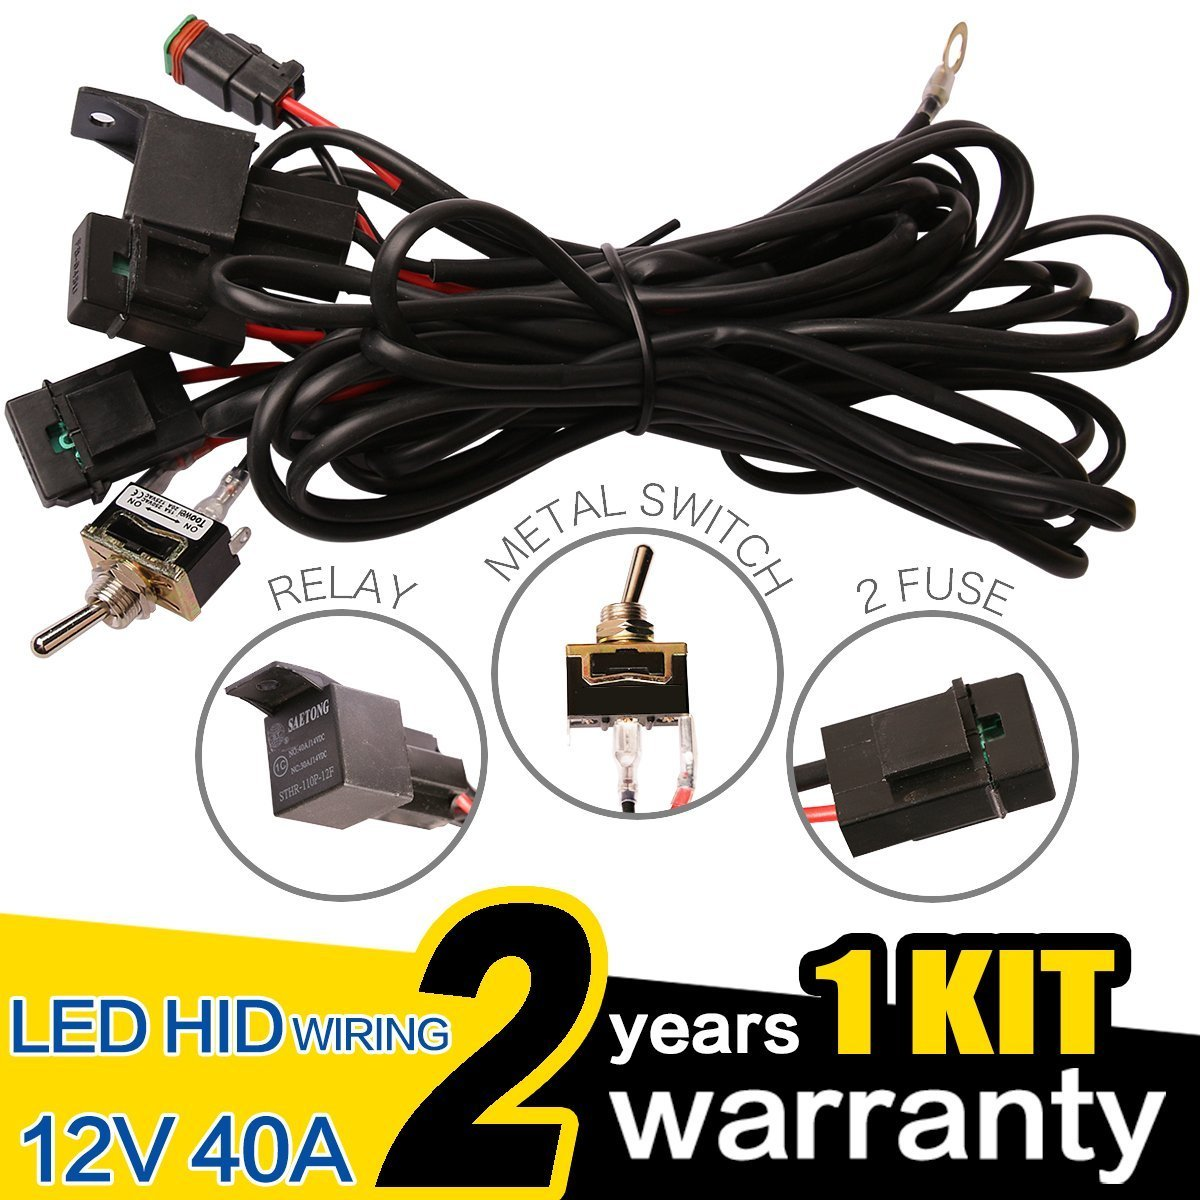 Cheap 12v Switch Wiring Find Deals On Line At Nilight Harness Install Get Quotations Wowled Premium Led Hid Work Driving Light Bar 40a Relay Kit